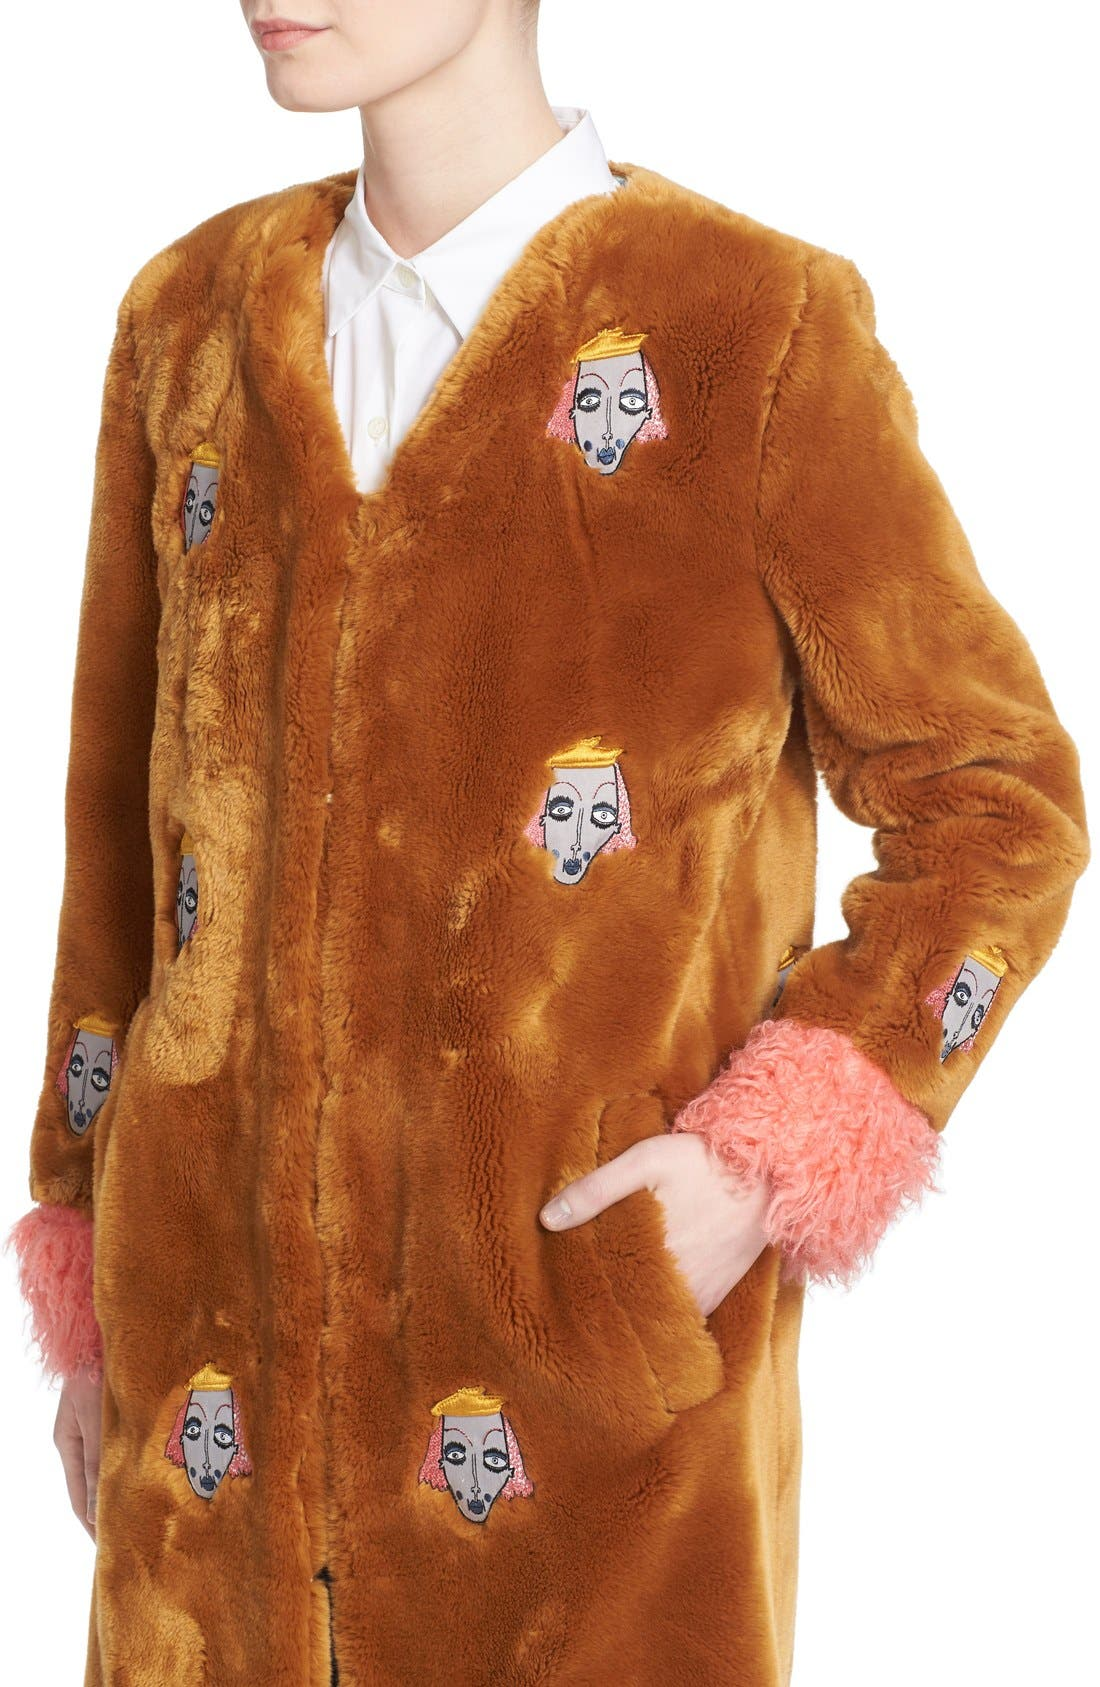 'Frenchie' Faux Fur Coat with Patches,                             Alternate thumbnail 4, color,                             240